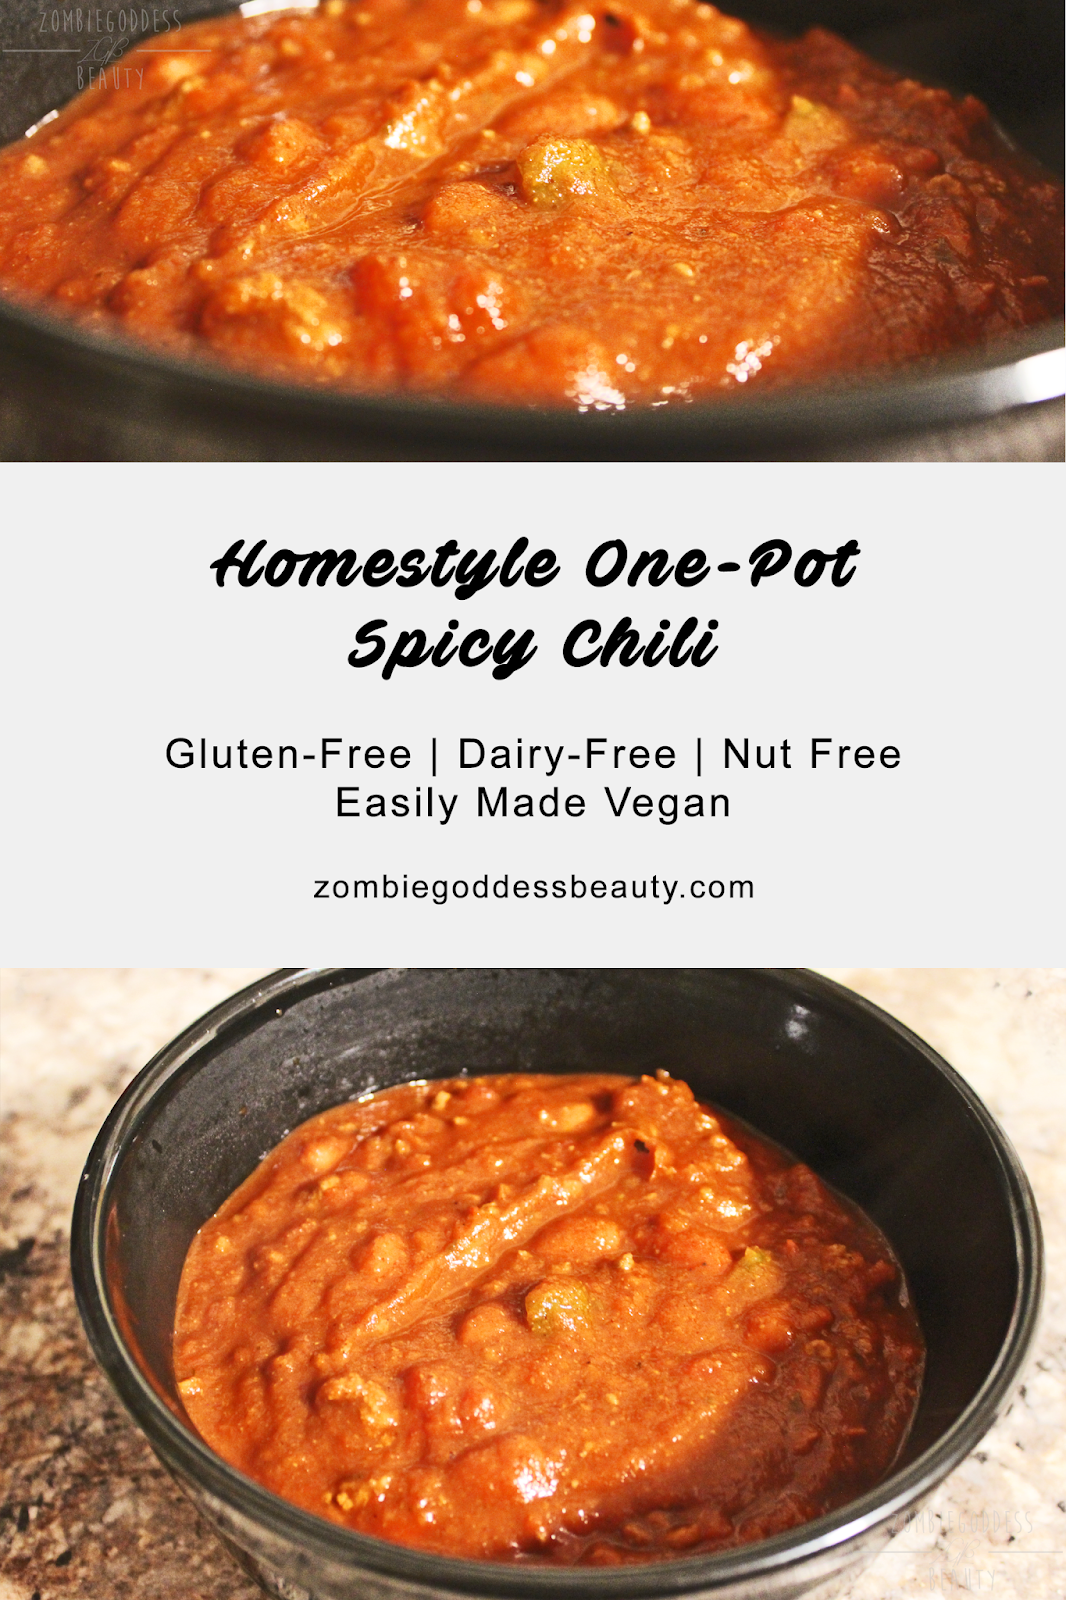 Homestyle One-Pot Spicy Chili Recipe | Gluten-Free + Dairy Free + Easily Made Vegan | By ZombieGoddess Beauty